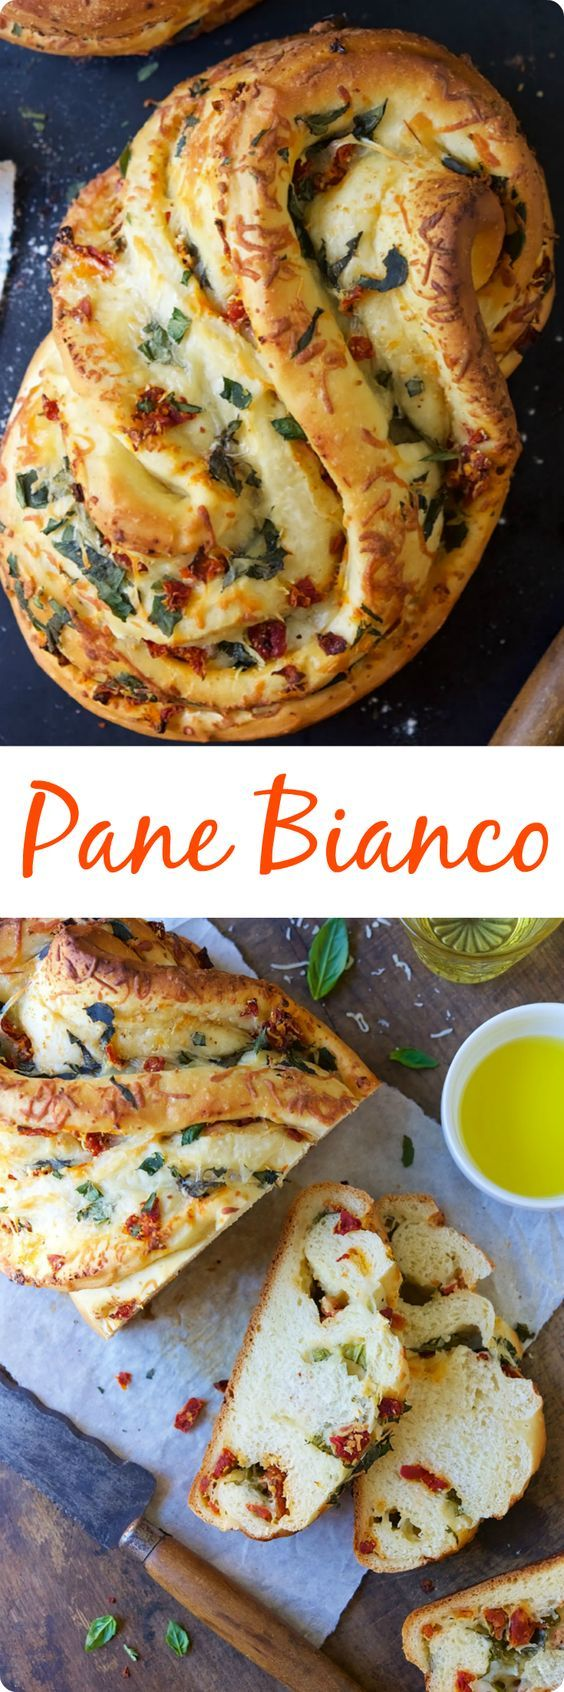 Pane Bianco   This recipe makes a tasty loaf filled with fresh basil, tomatoes, garlic, and shredded cheese; the bread has wonderful soft texture, and is packed with flavor. The unique shape is simple to achieve, and makes an impressive presentation. Find recipe at redstaryeast.com.